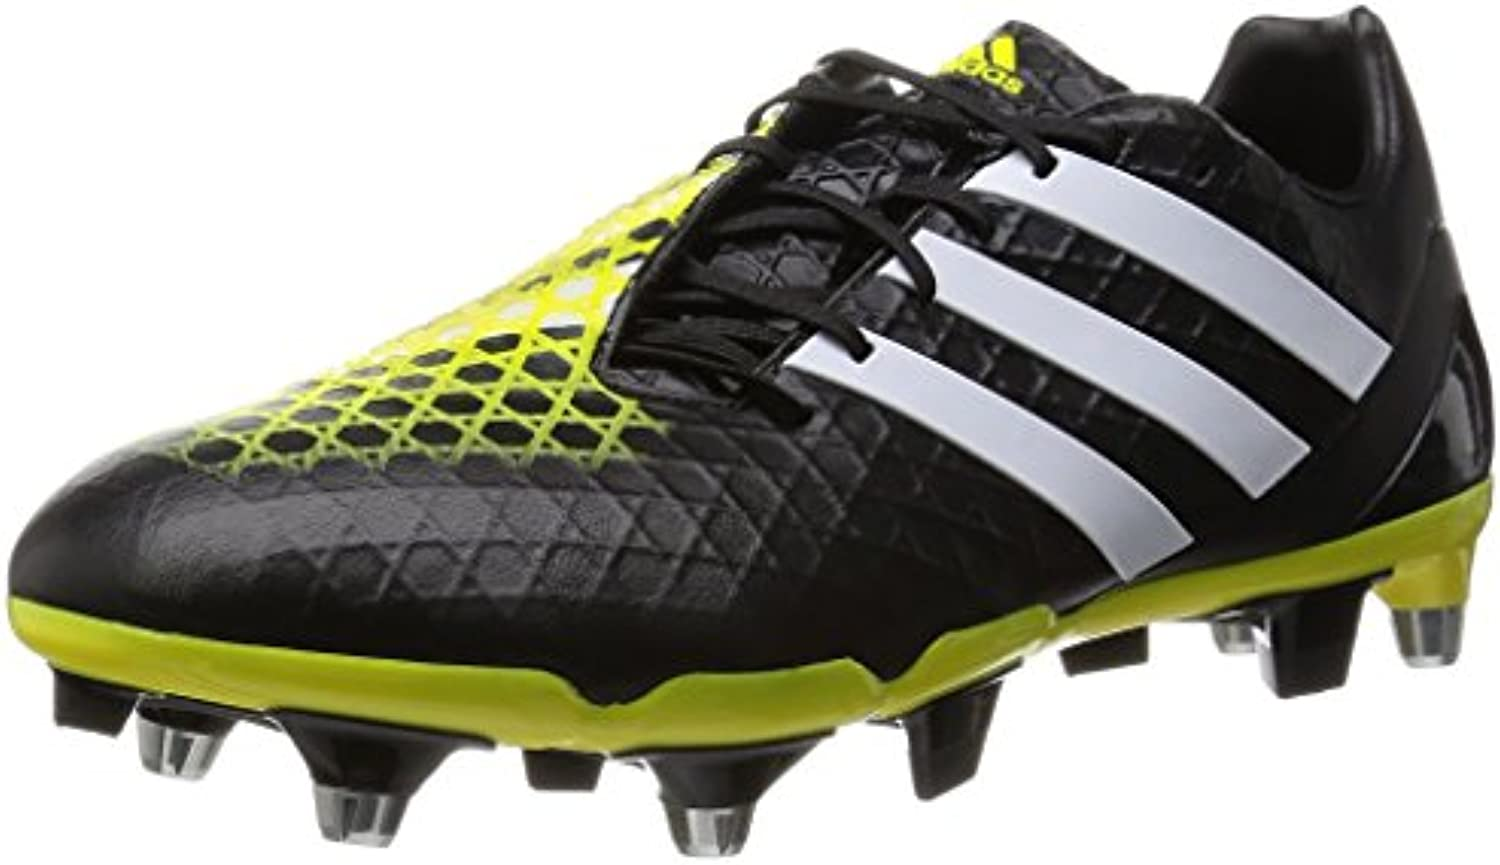 Predator Incurza SG Rugby Boots 2015 - Black